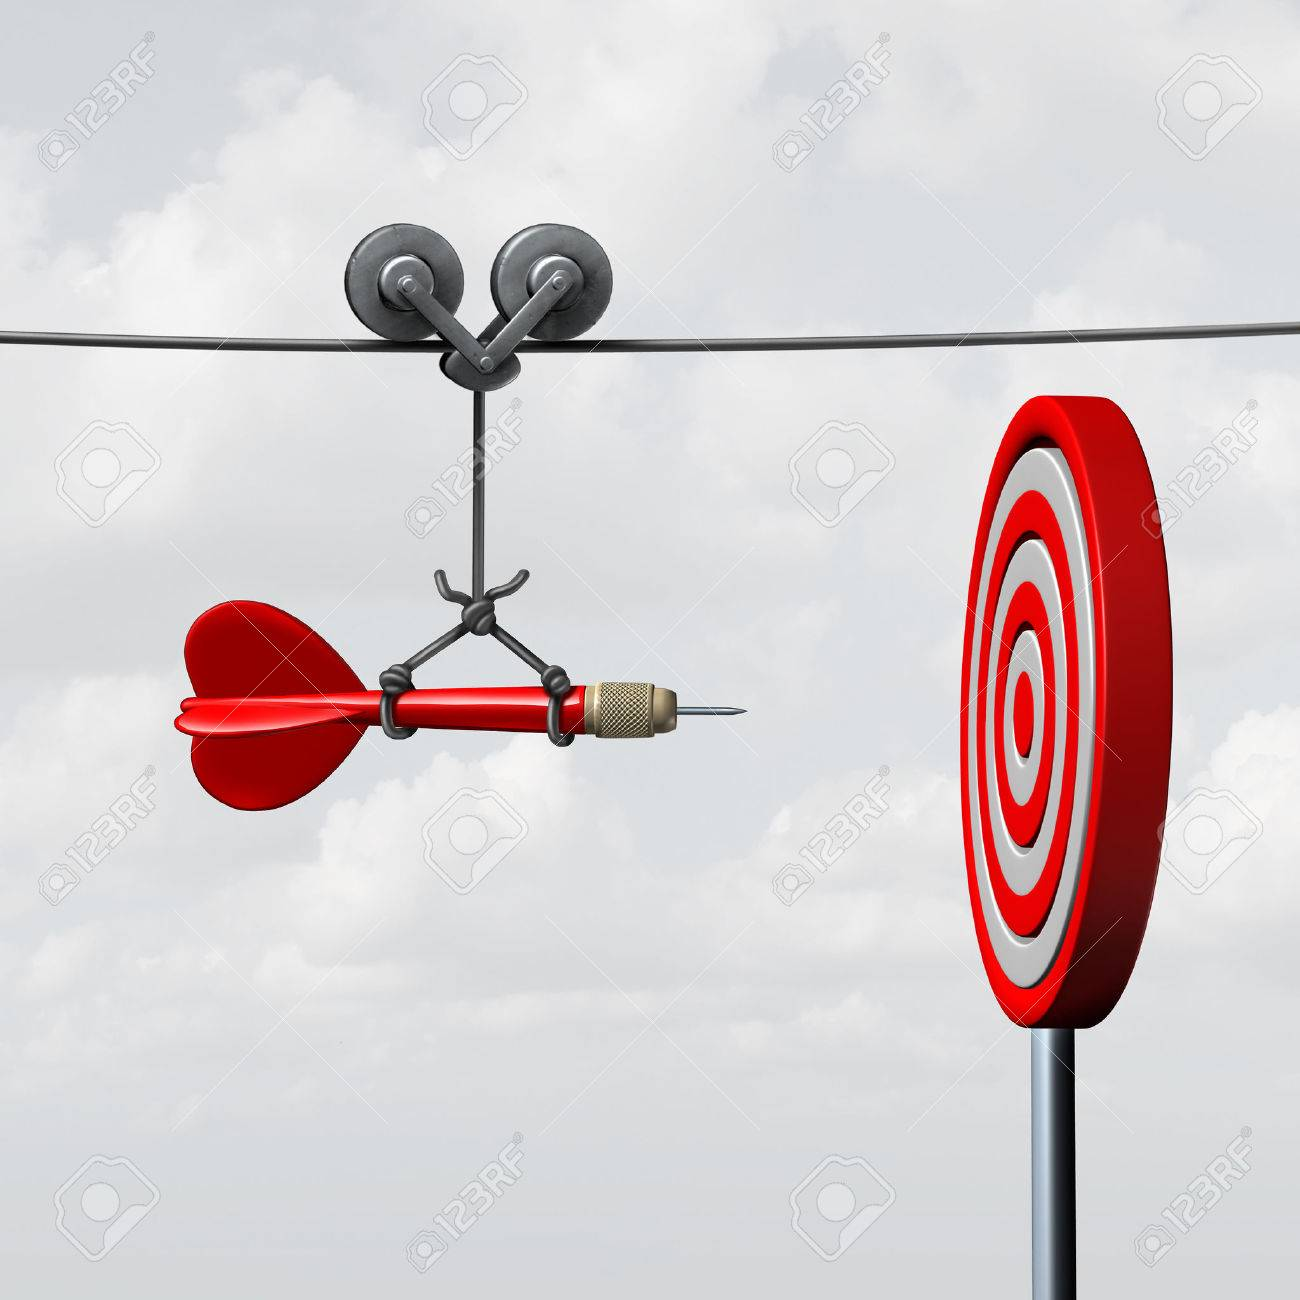 Success hitting target as a business assistance concept with the help of a guide as a symbol for goal achievement management and aim to hit the bull's eye as a dart assured to go straight towards the center. Stock Photo - 49949635